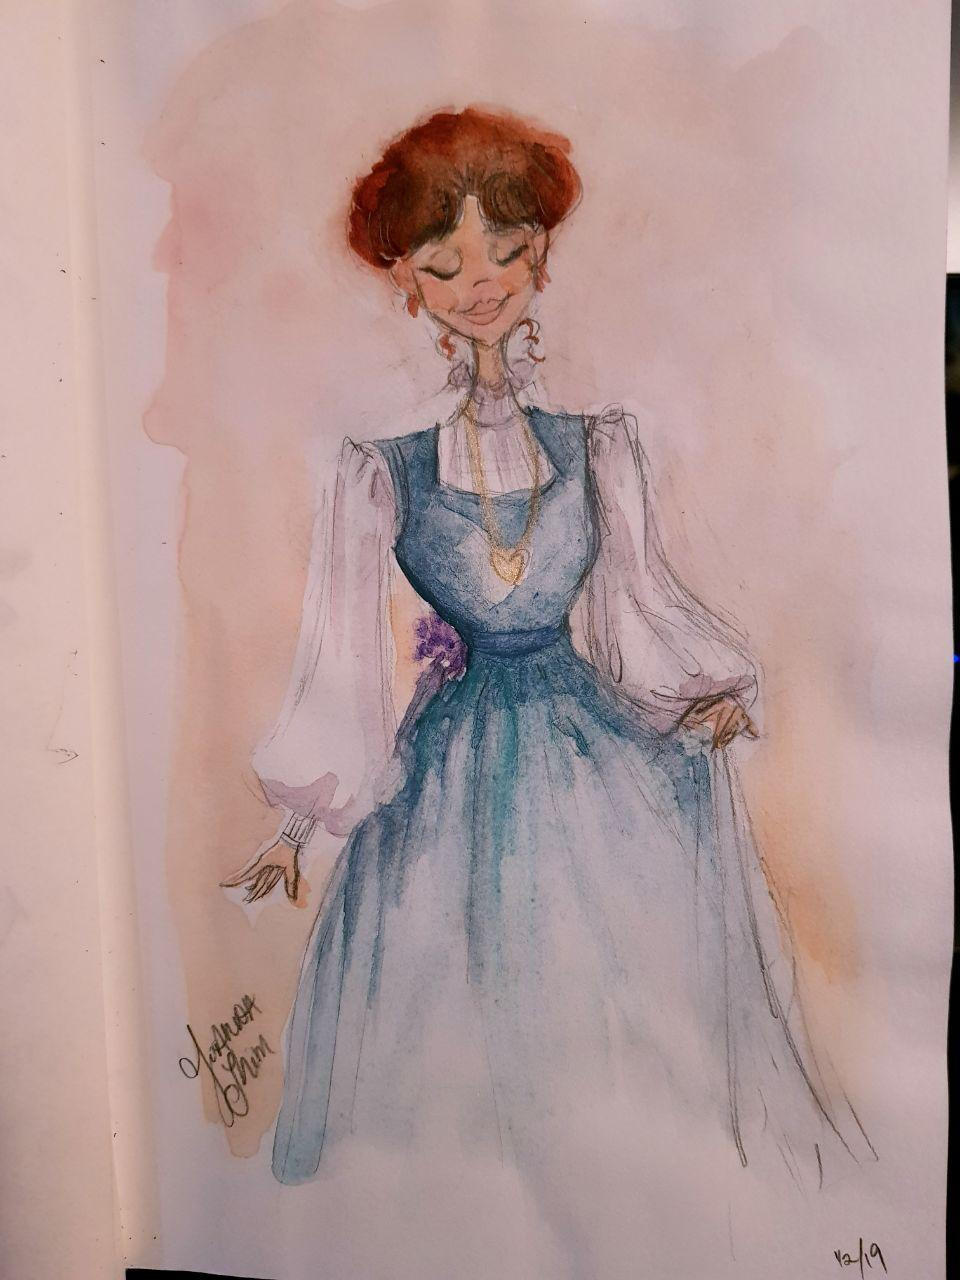 Watercolor painting. Felt inspired while rewatching one of my favorite movies, My Fair Lady.